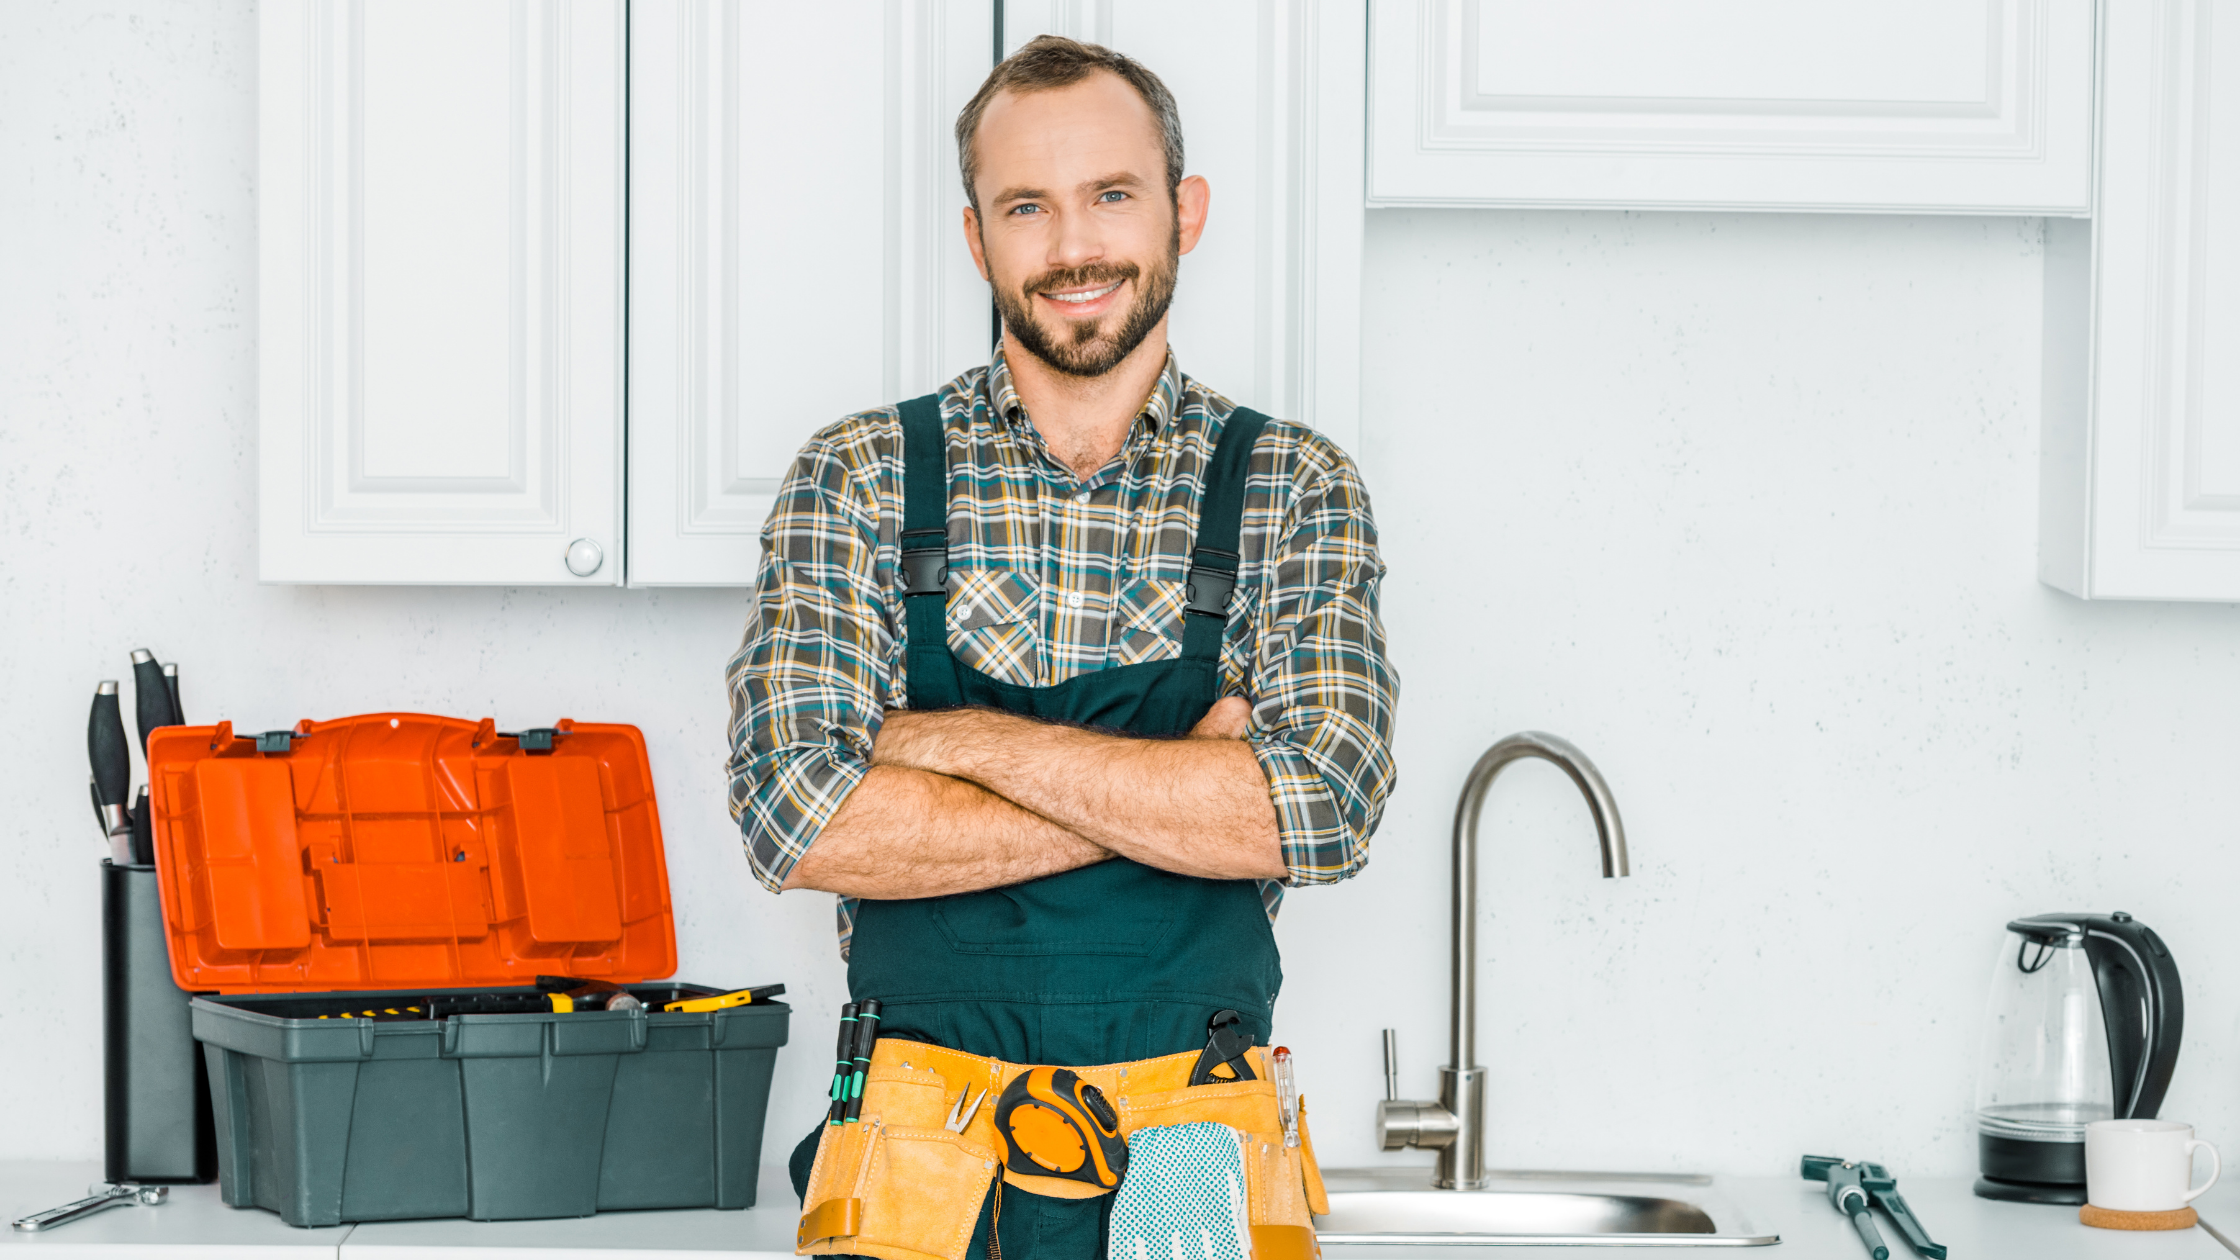 How much do professional plumbers cost?